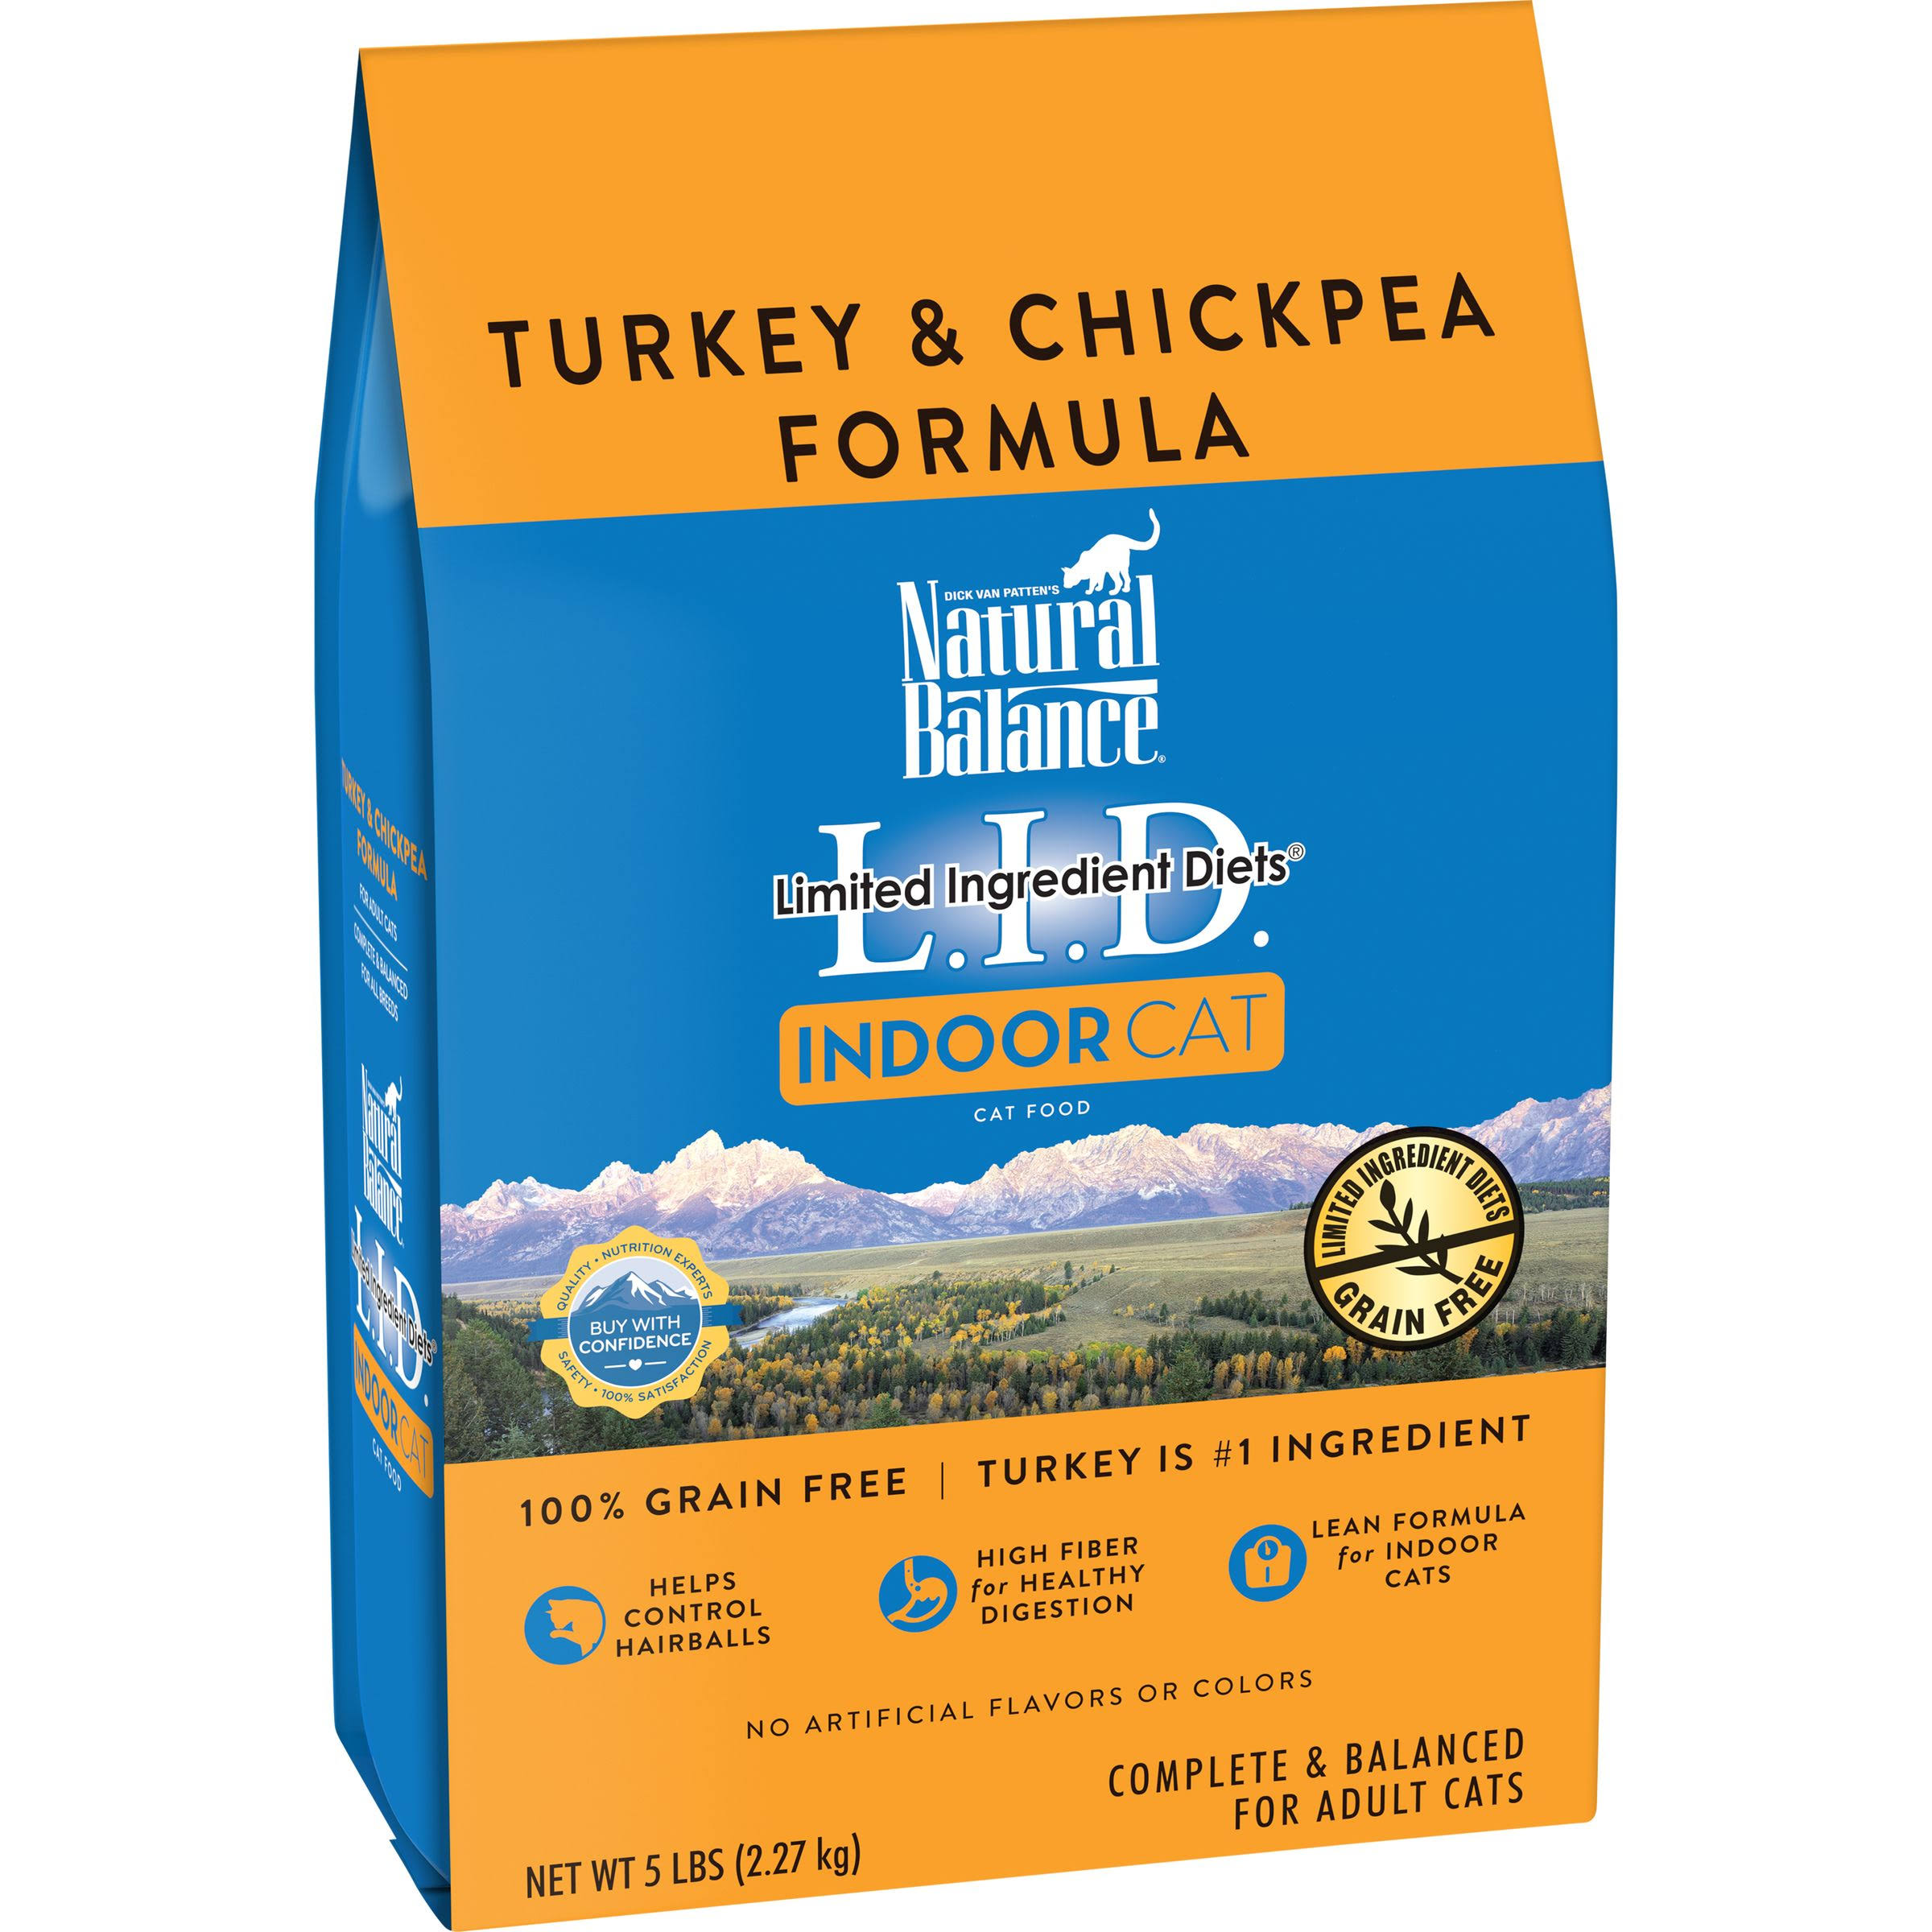 Natural Balance Limited Ingredient Diets Dry Cat Food for Indoor Cats - Turkey and Chickpea, 5lb